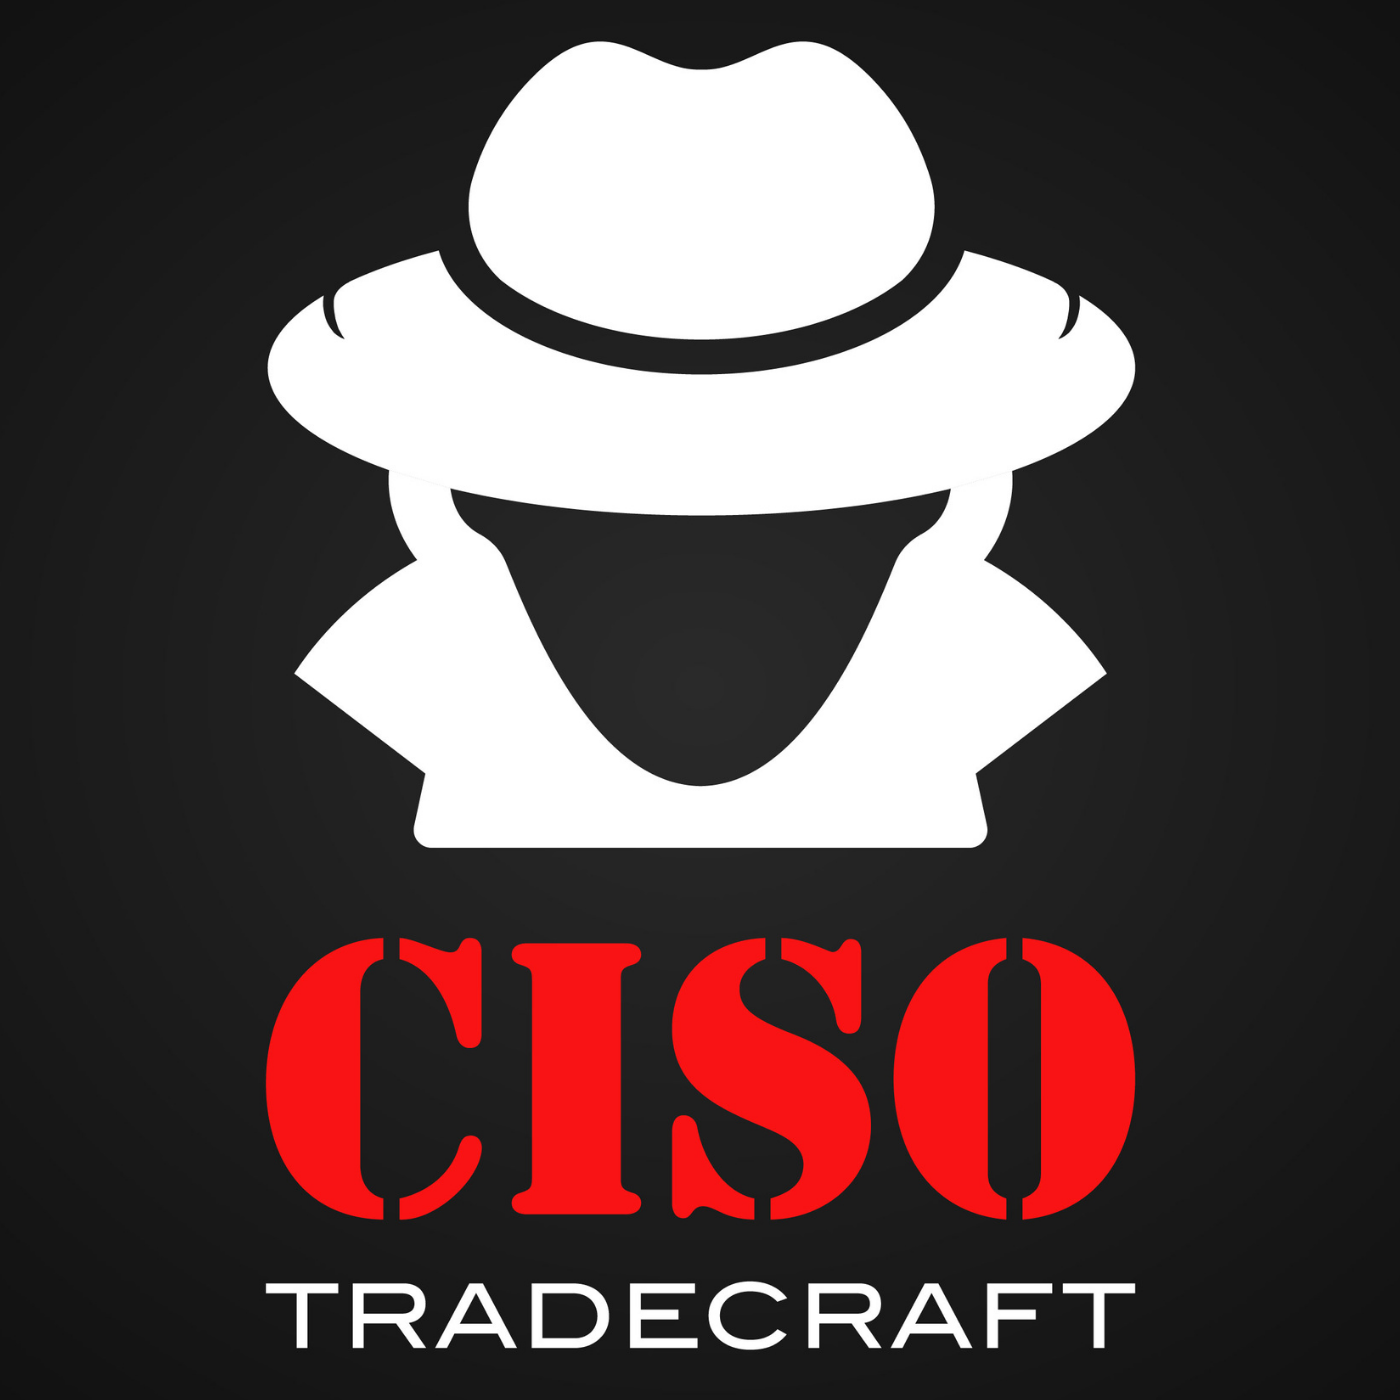 CISO Tradecraft: Executive Order on Improving the Nation's Cybersecurity